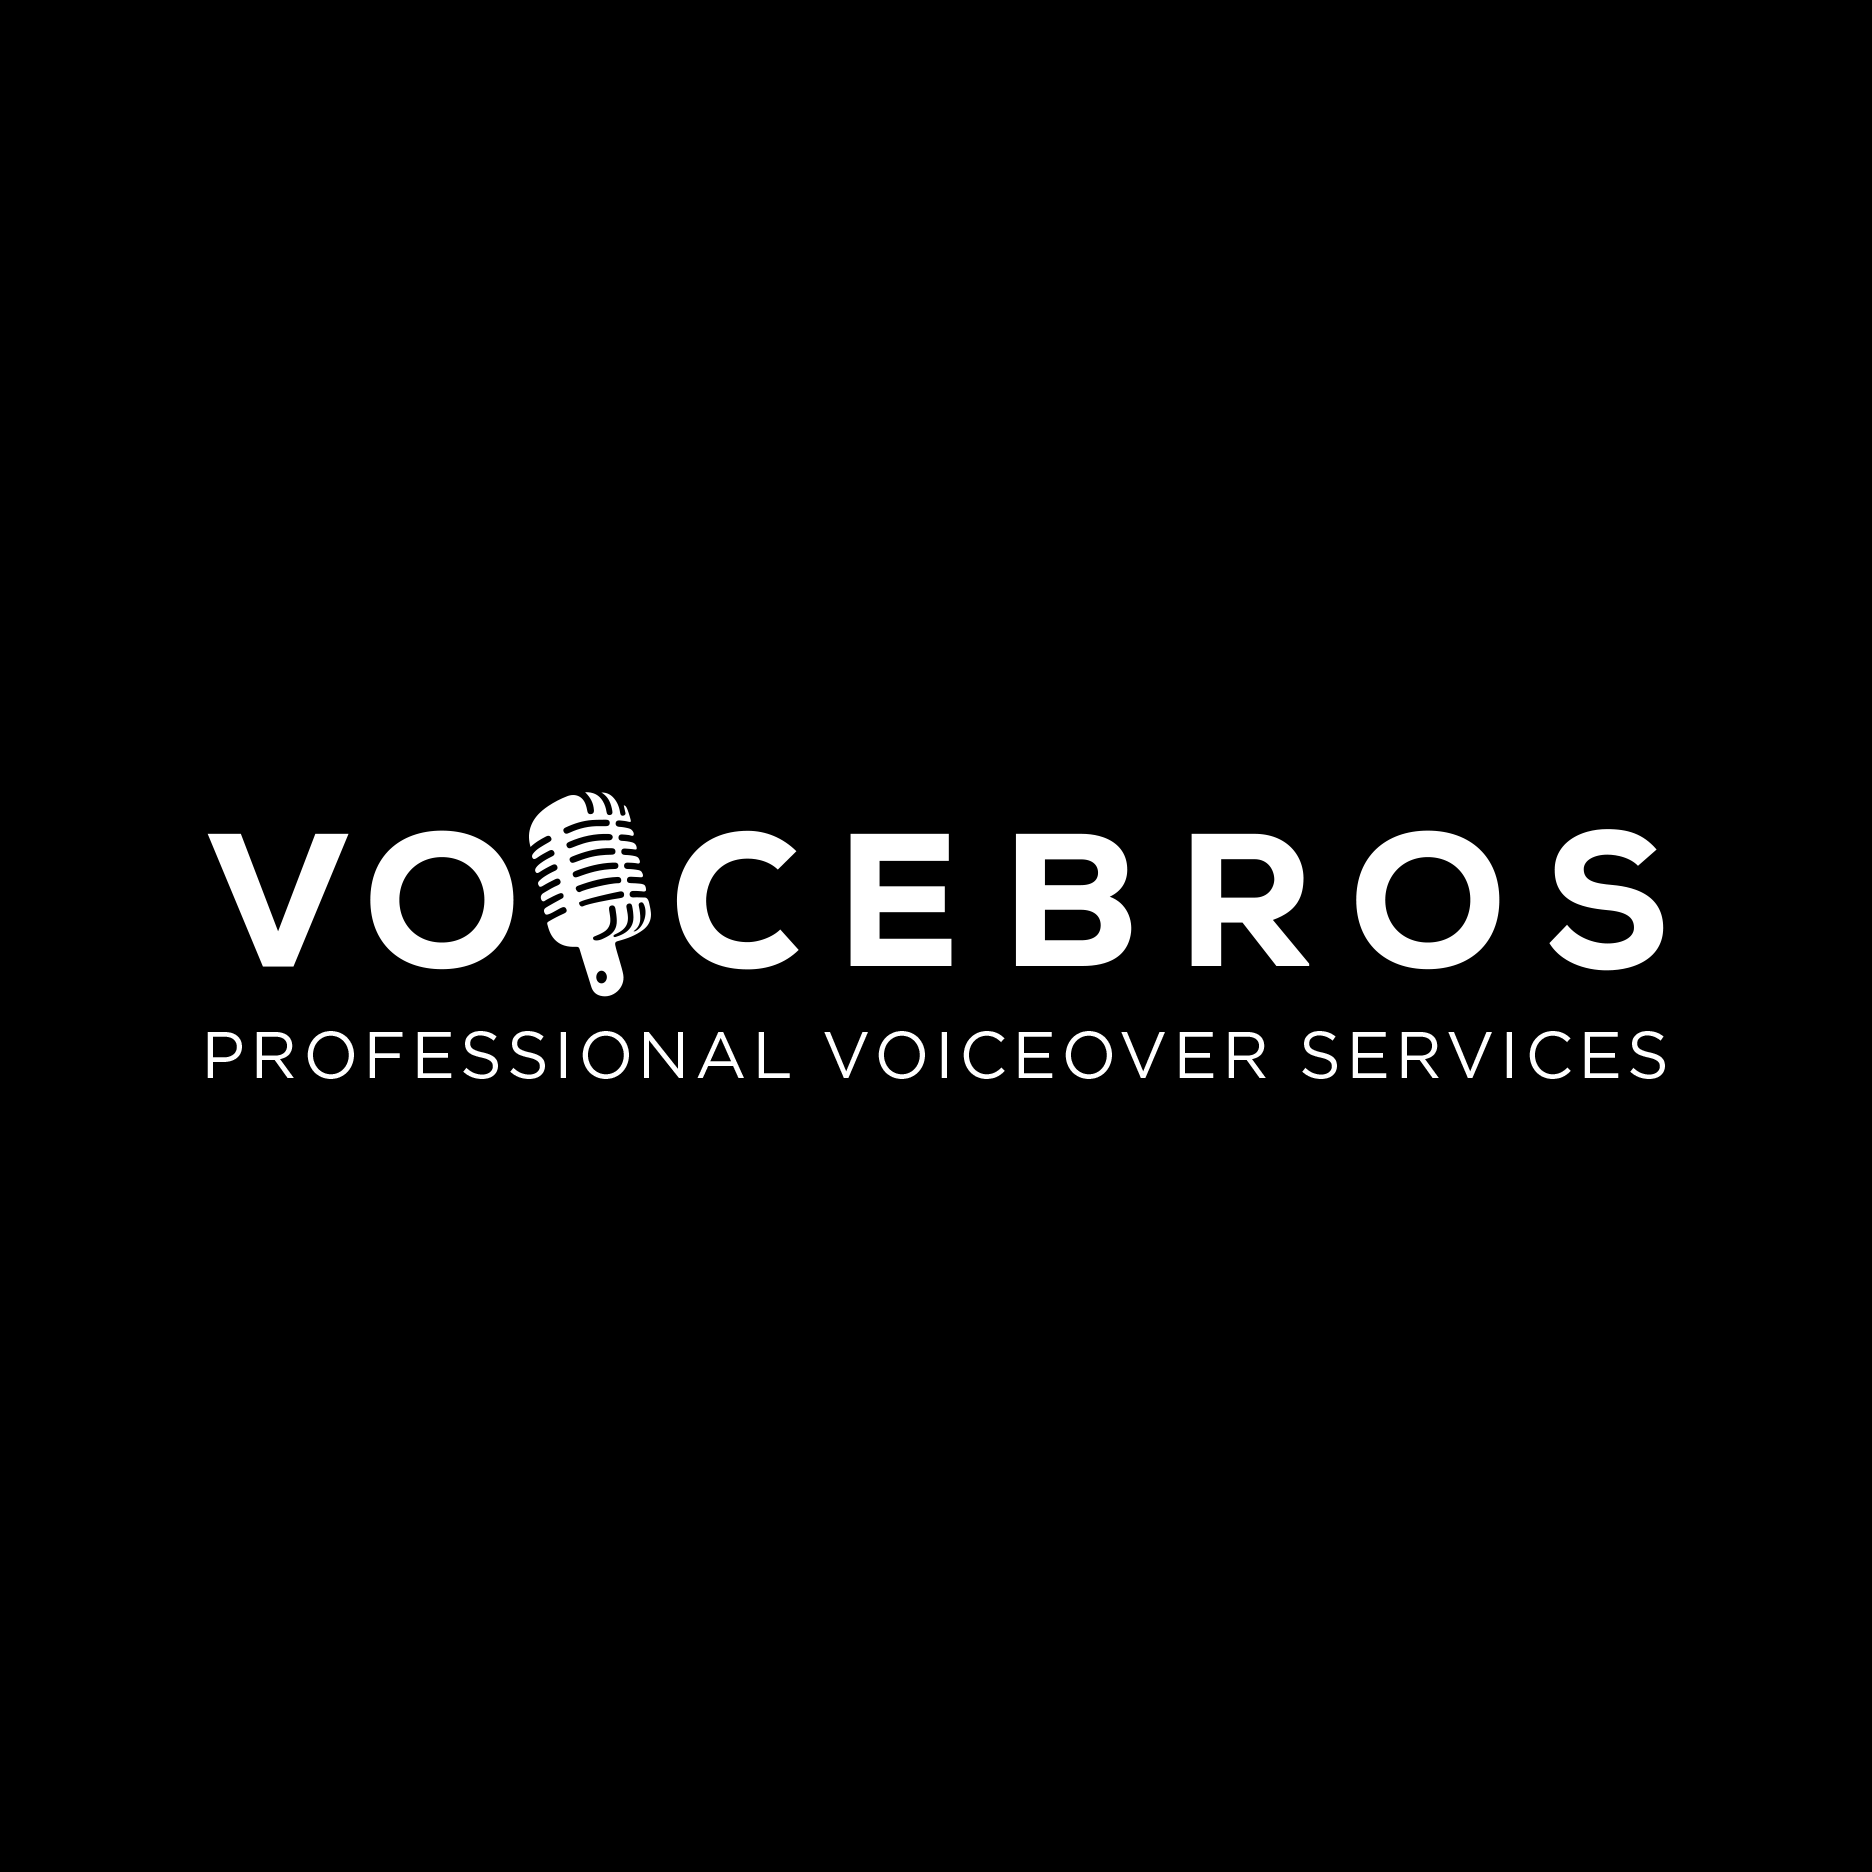 Pascale0 is a voice over actor